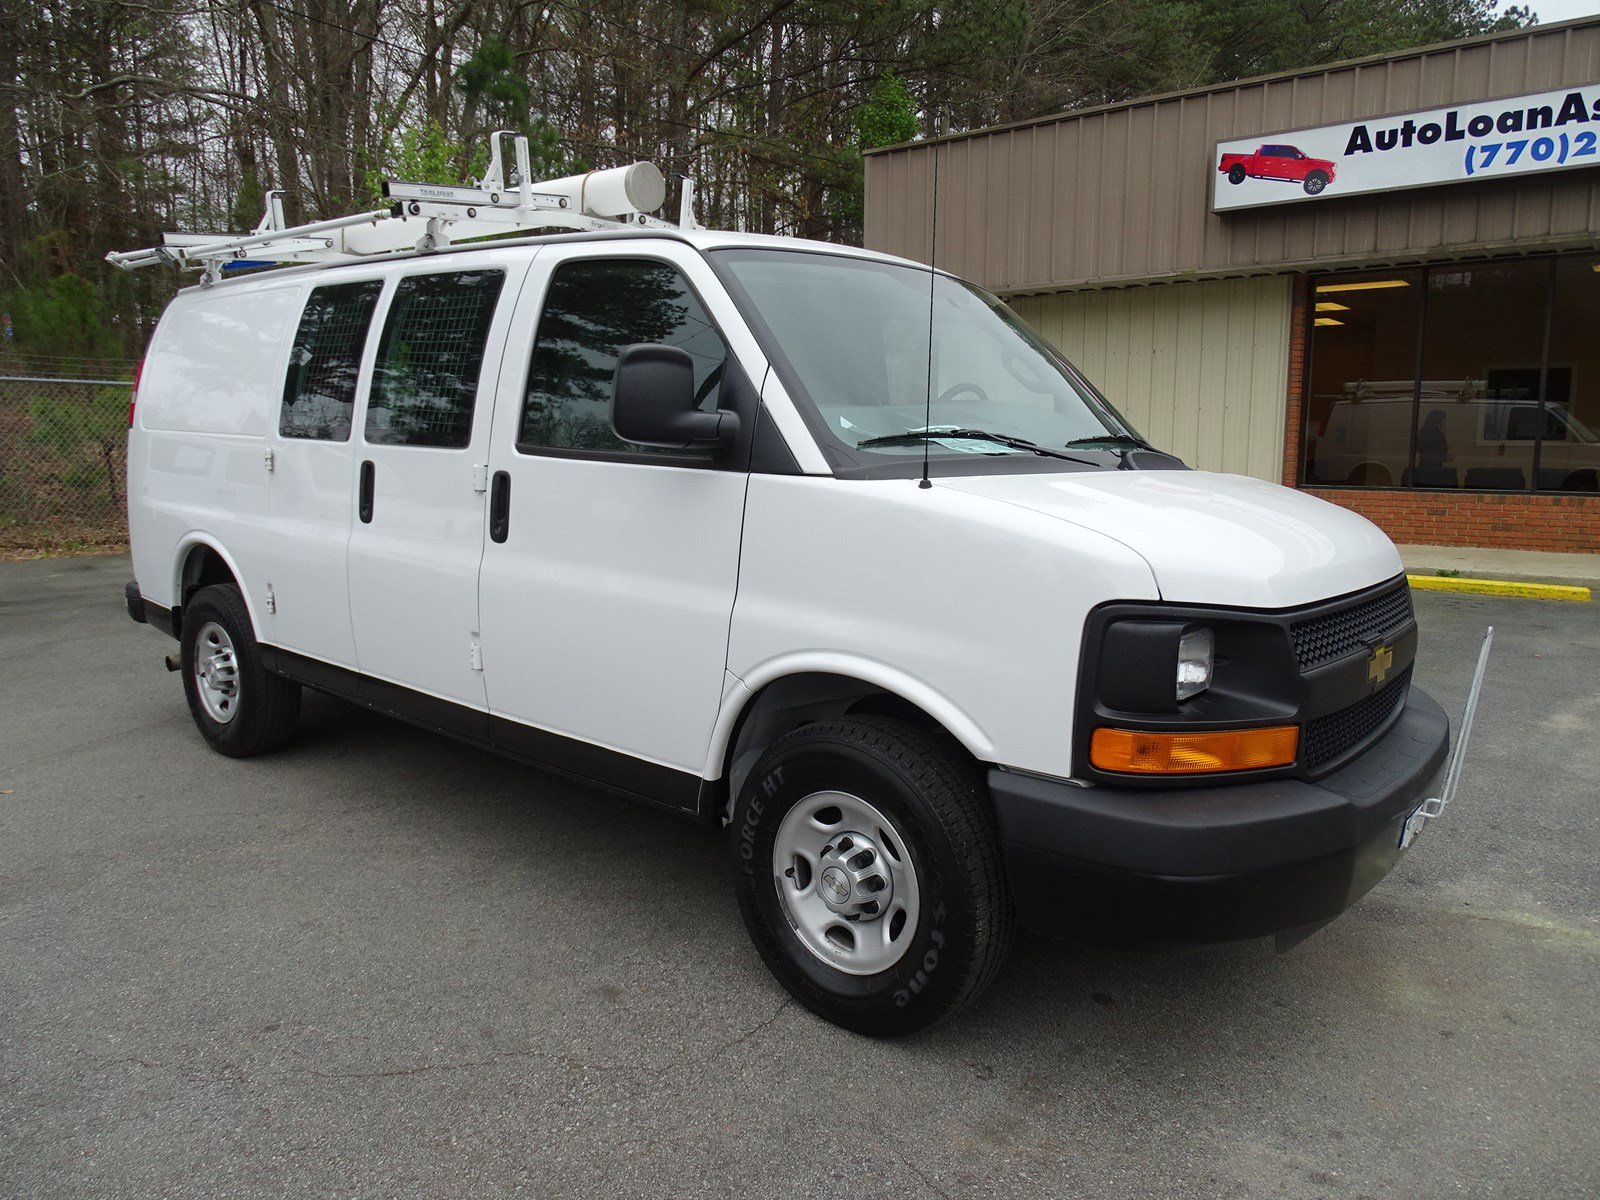 2016 Chevrolet Express 2500 Work Van  Cruise Control GVWR 8 600 lbs Transmission Electronic